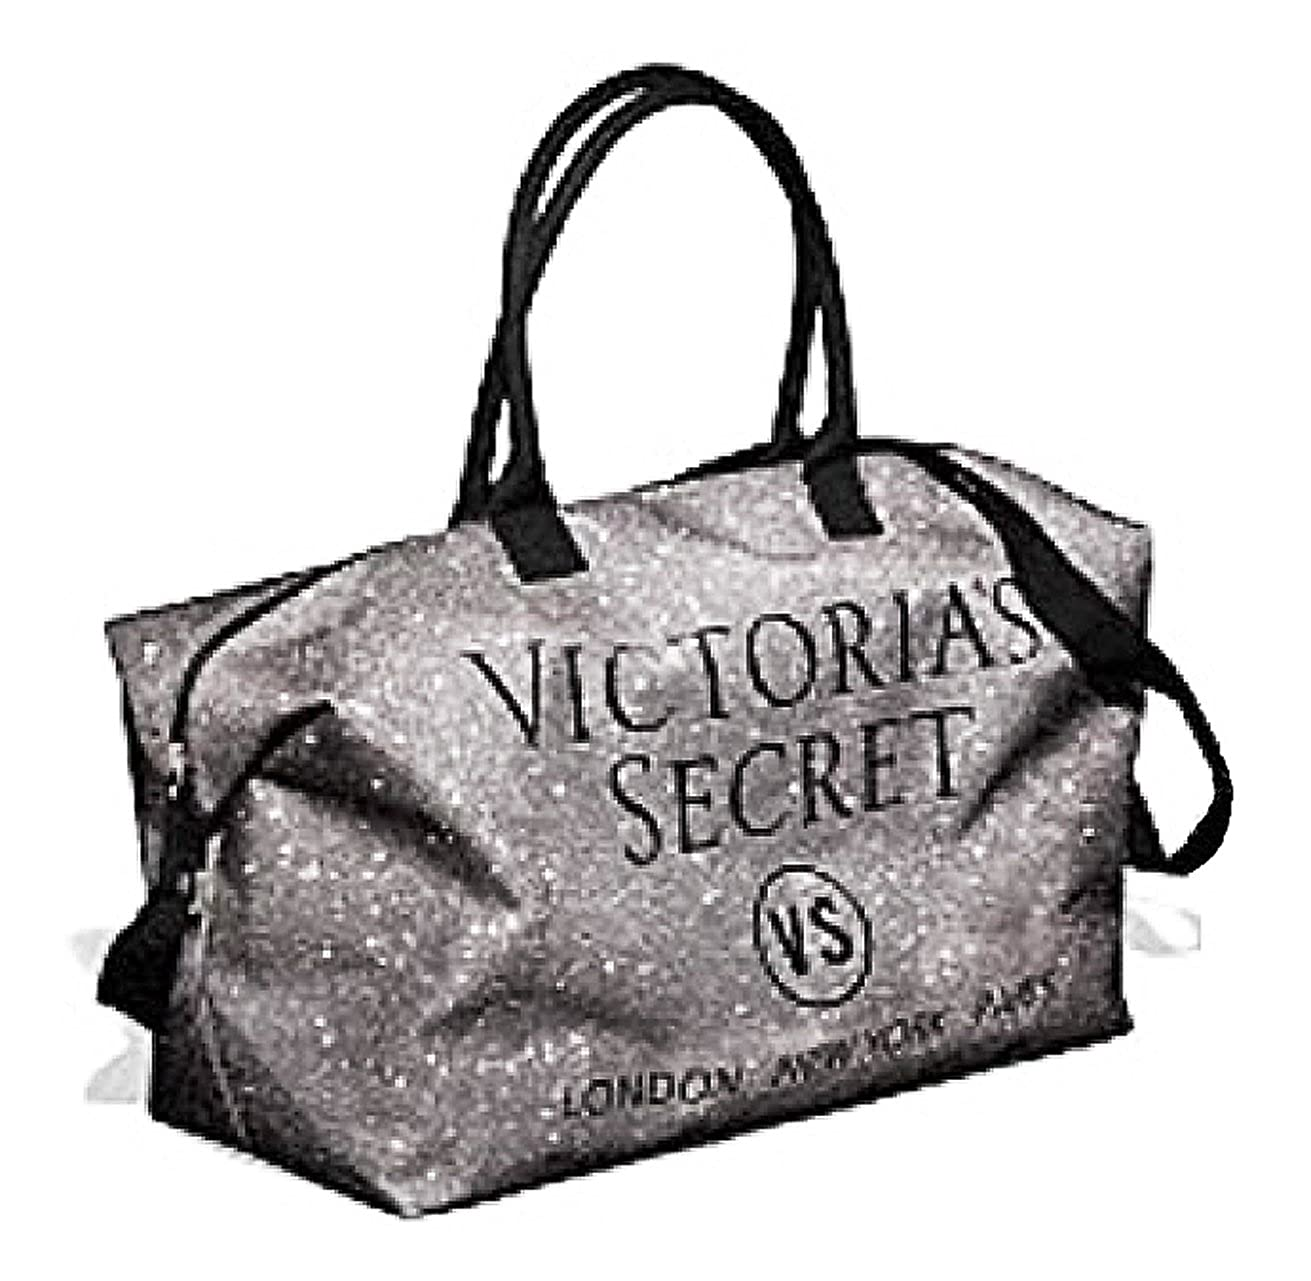 Victoria s Secret Popup Weekender Tote Bag, Holiday 2015 Limited Edition